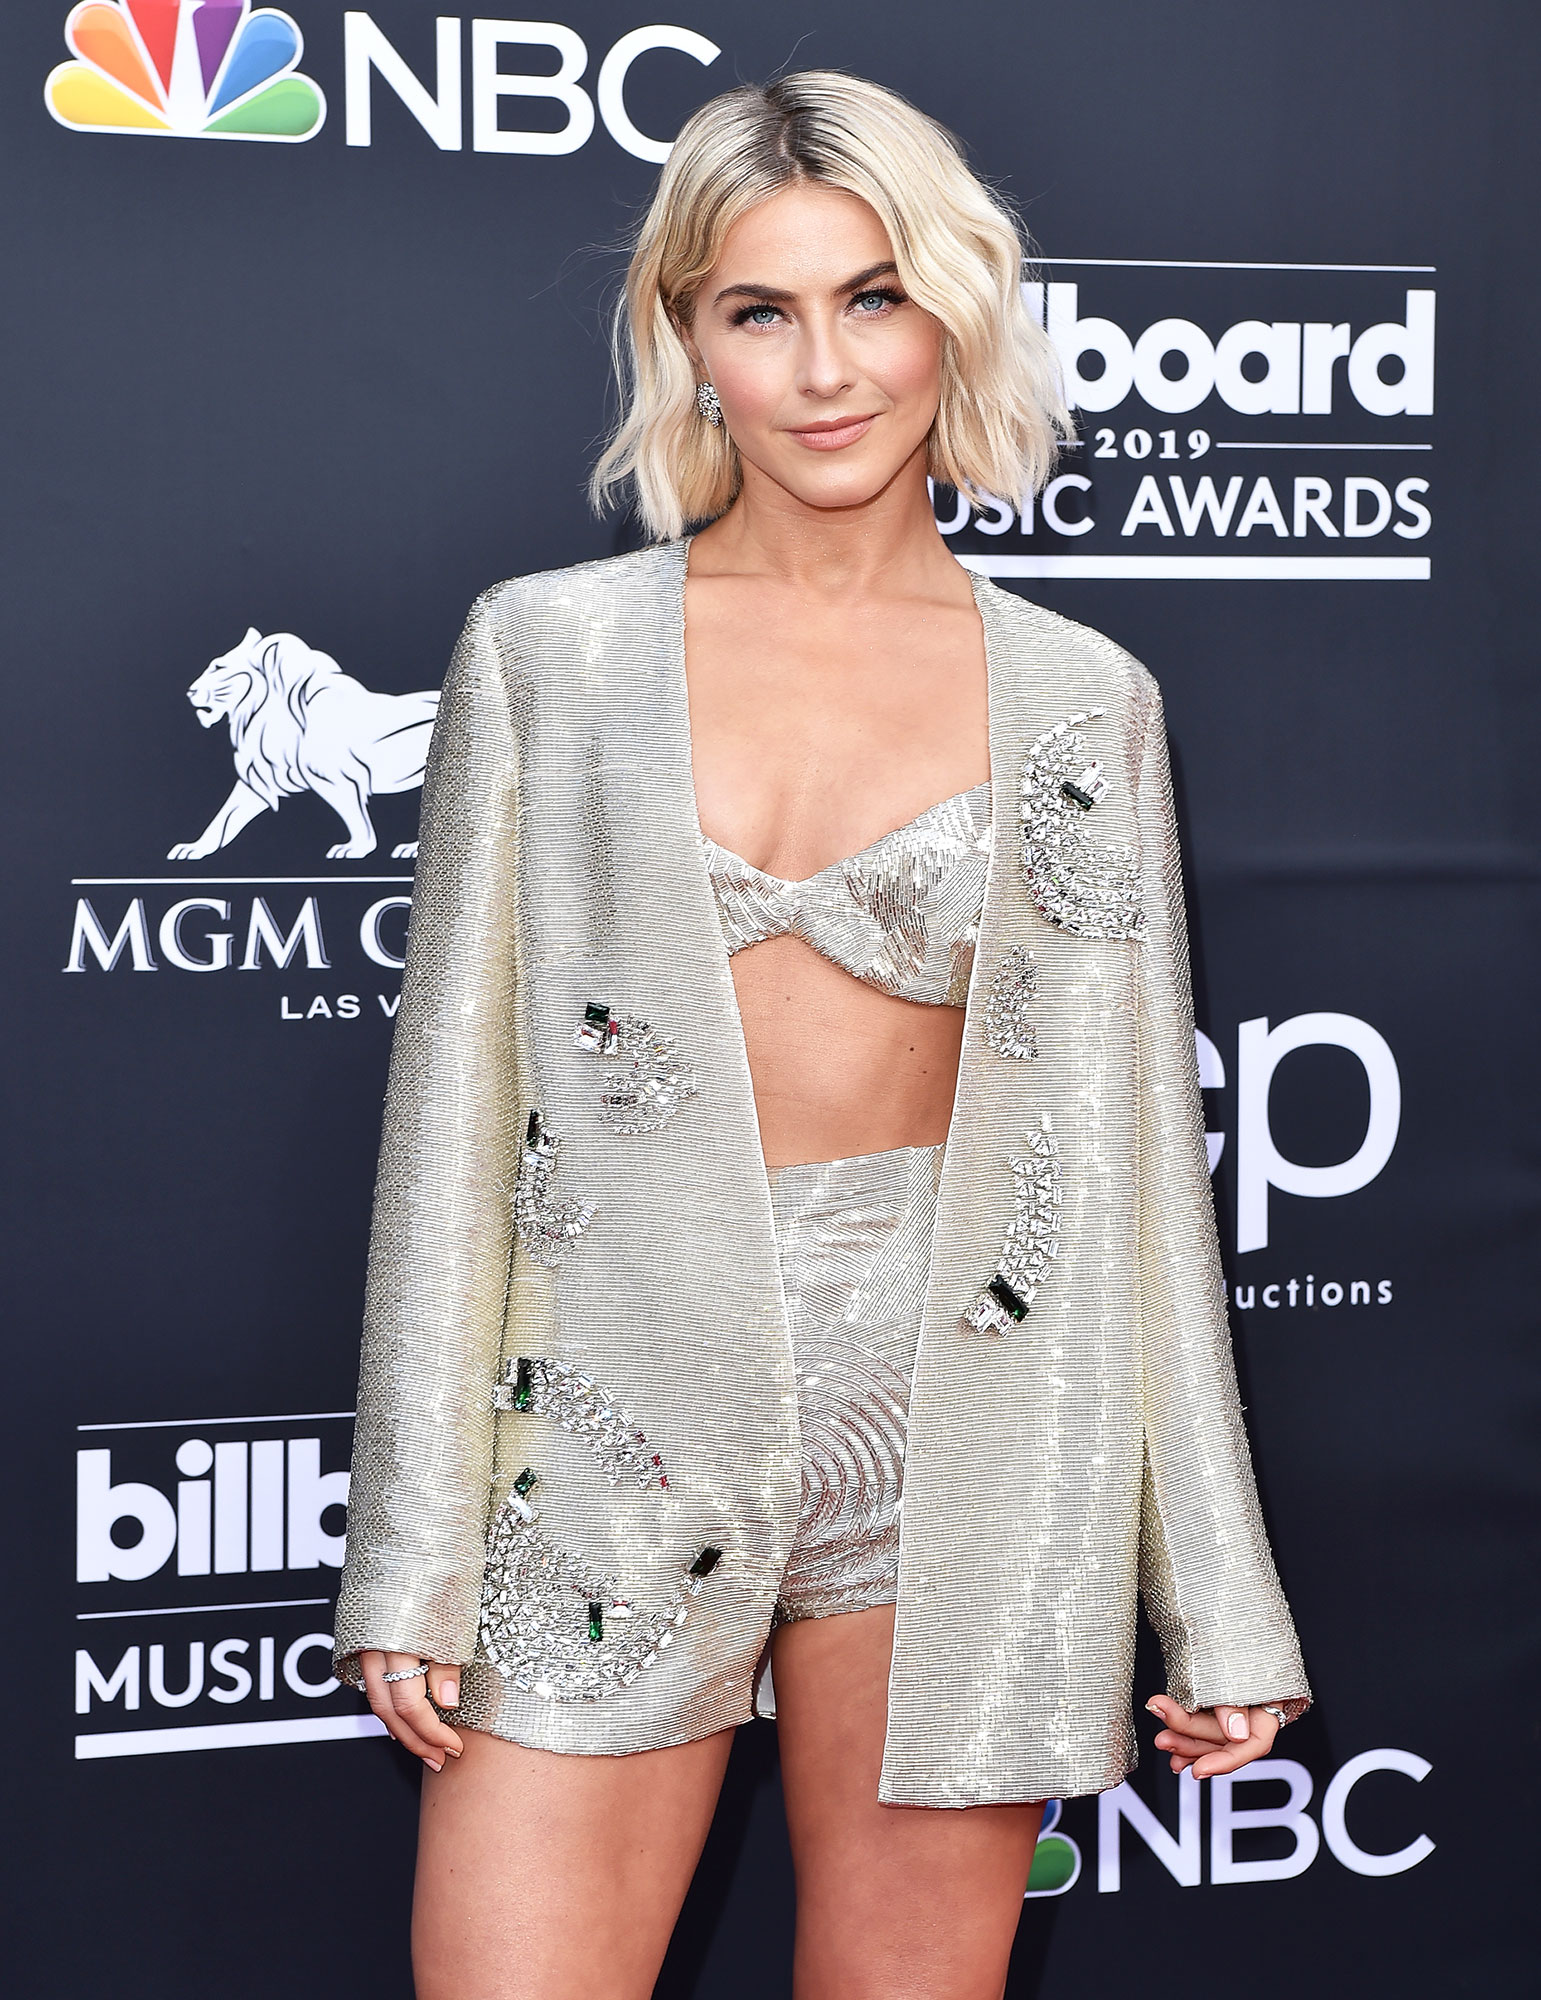 Julianne Hough hair transformation - Julianne Hough attends the 2019 Billboard Music Awards at MGM Grand Garden Arena on May 01, 2019 in Las Vegas, Nevada.